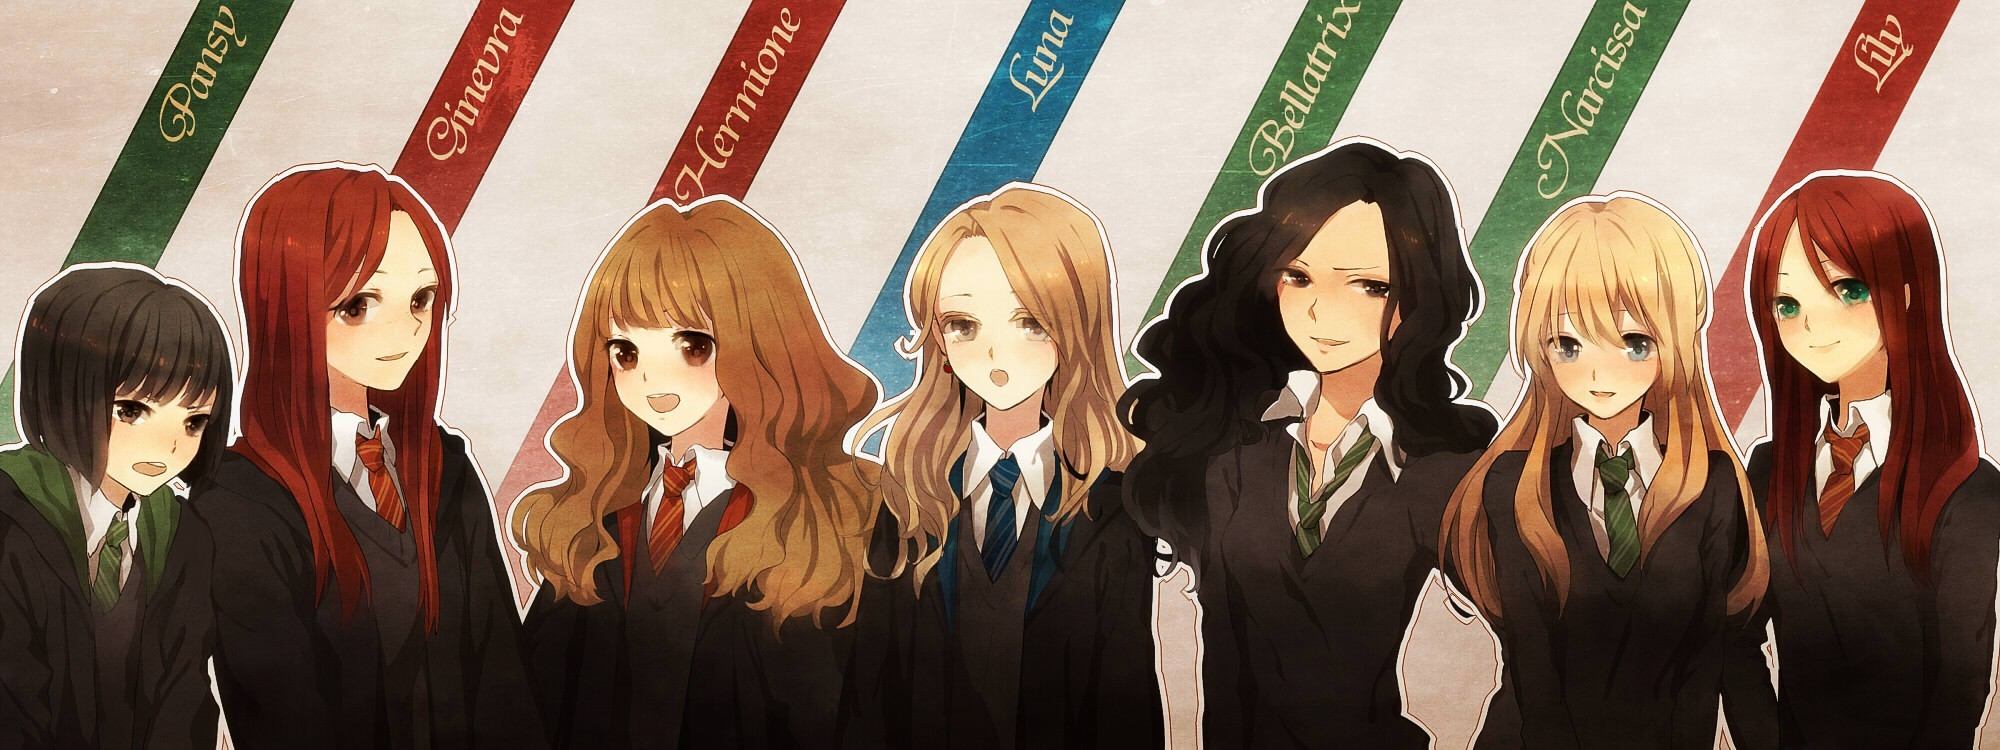 seifuku harry potter lily evans hermione granger HD Wallpaper